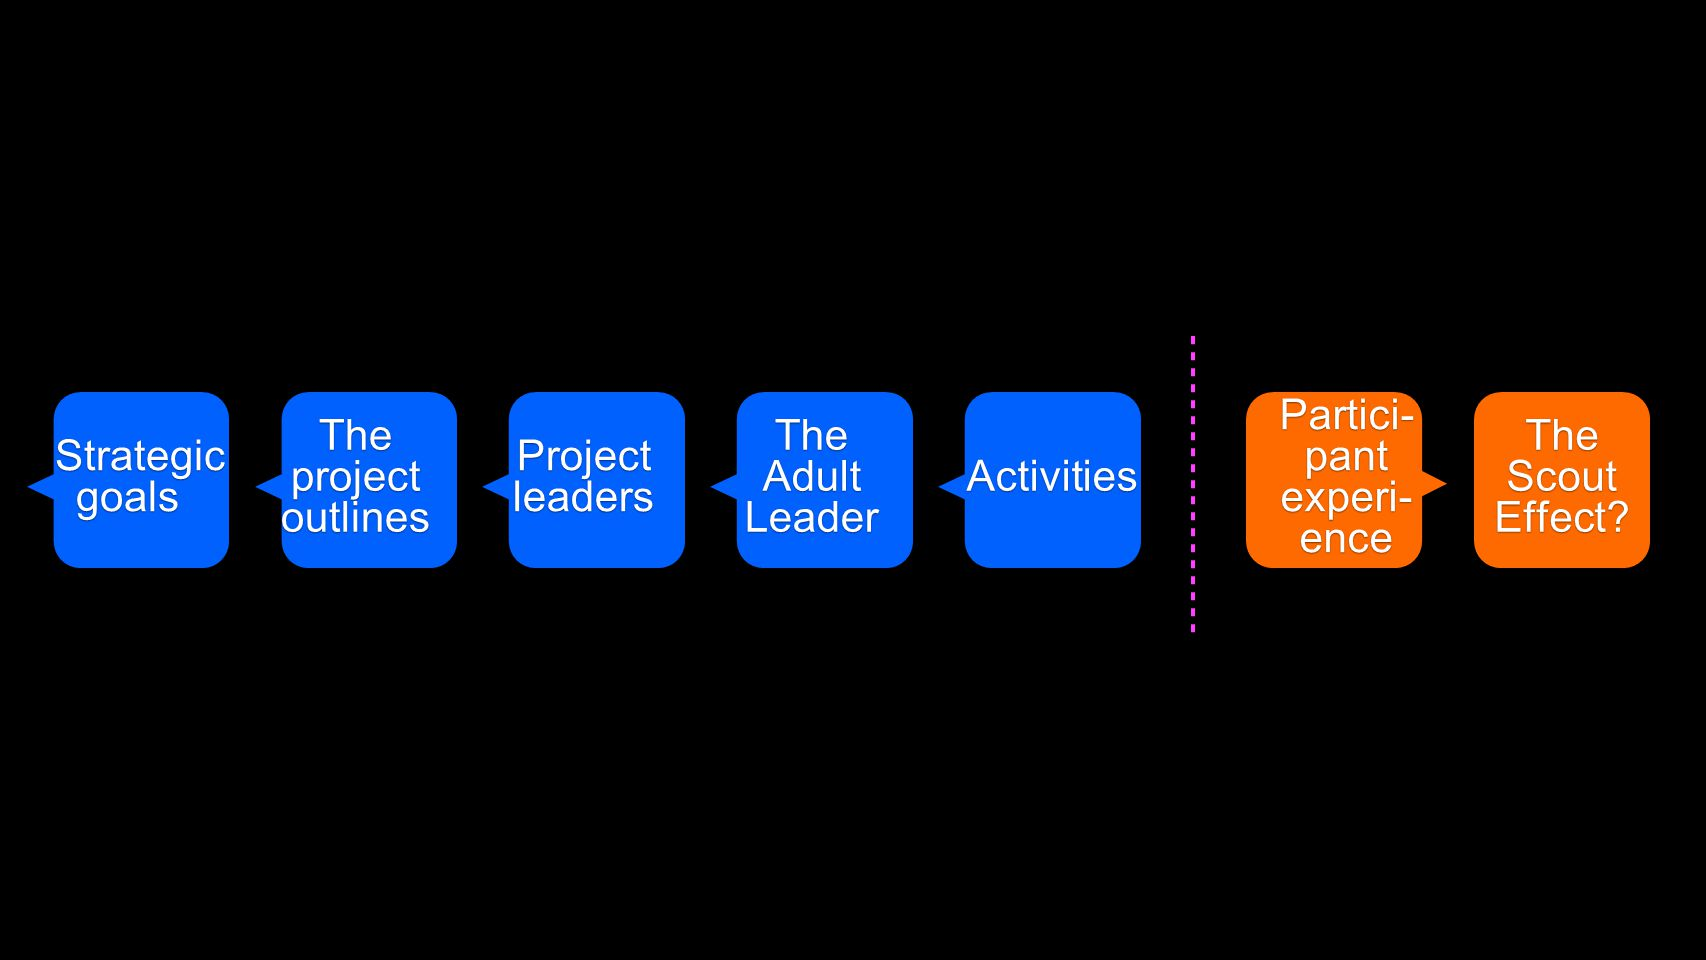 The Adult Leader Projectleaders The project outlines Strategic Strategicgoals Activities Activities Partici- pant experi- ence The Scout Effect